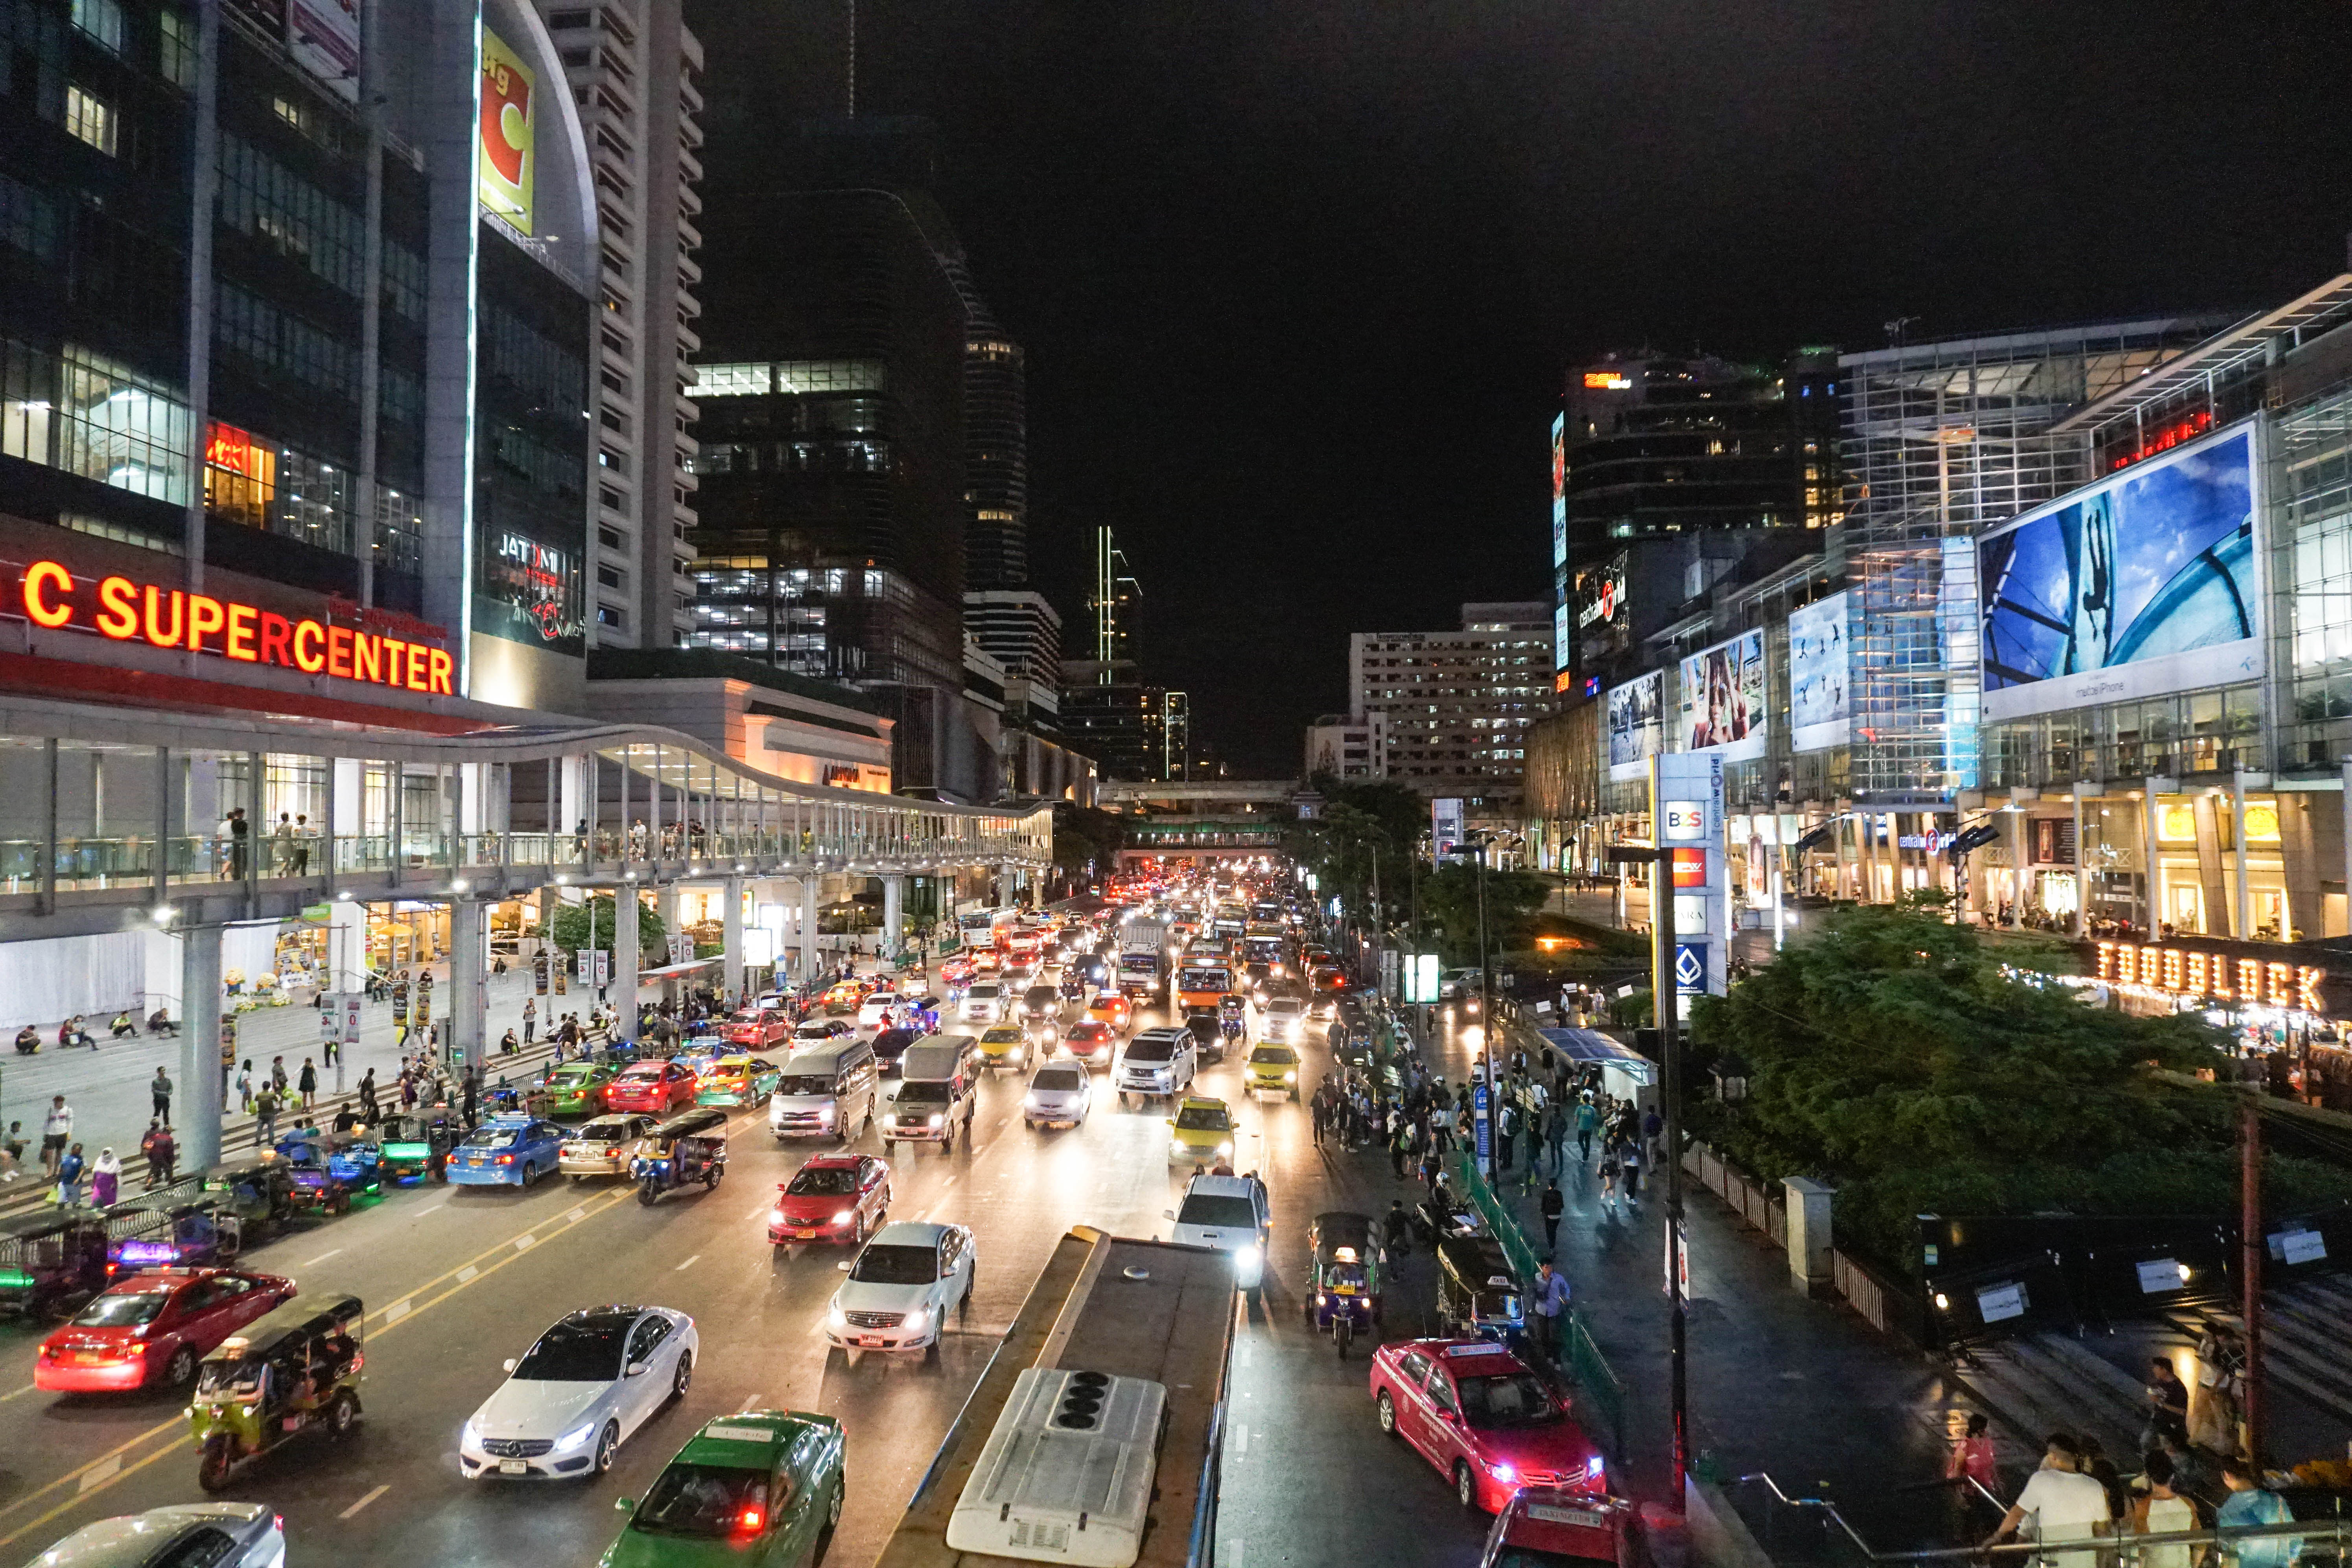 Downtown Traffic In The Streets Of Bangkok Thailand Image